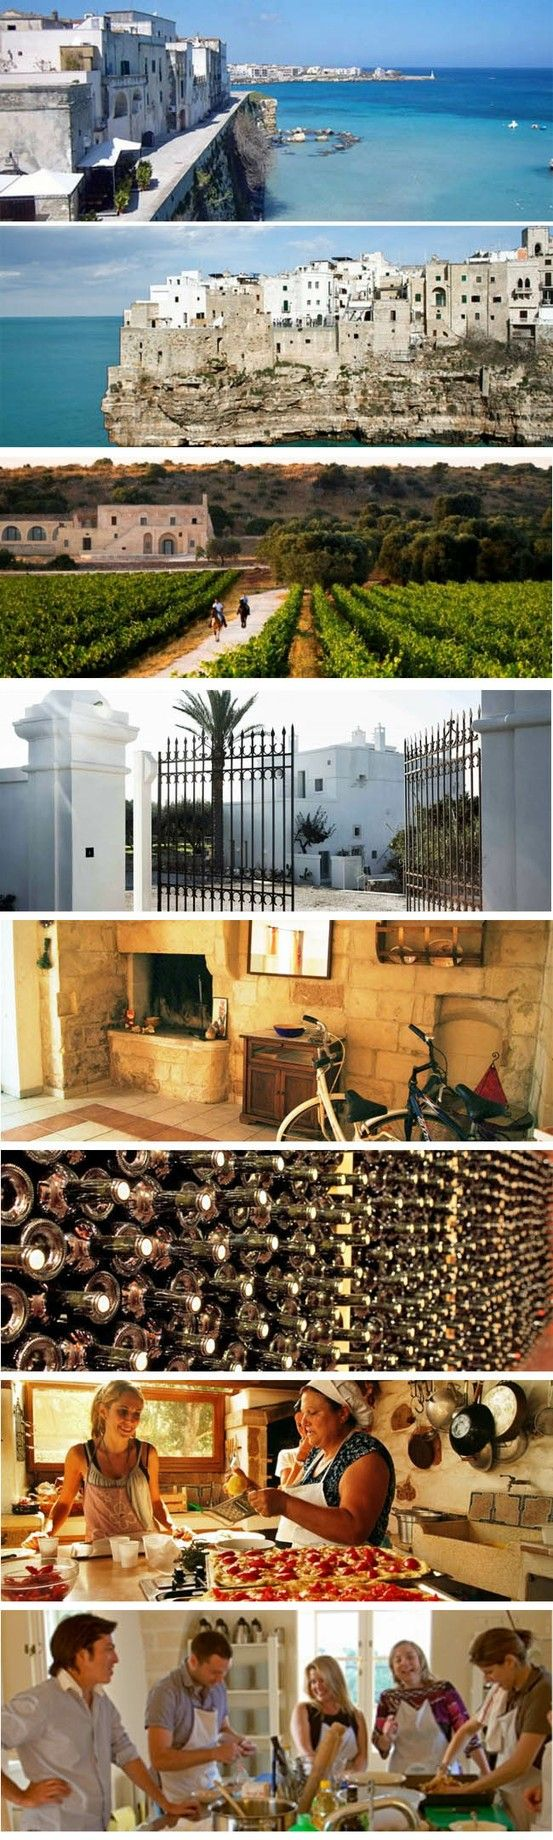 One of our Wine Regions to Watch in 2013, #Puglia provides the wine traveller with an authentic southern Italian wine and culinary experience.